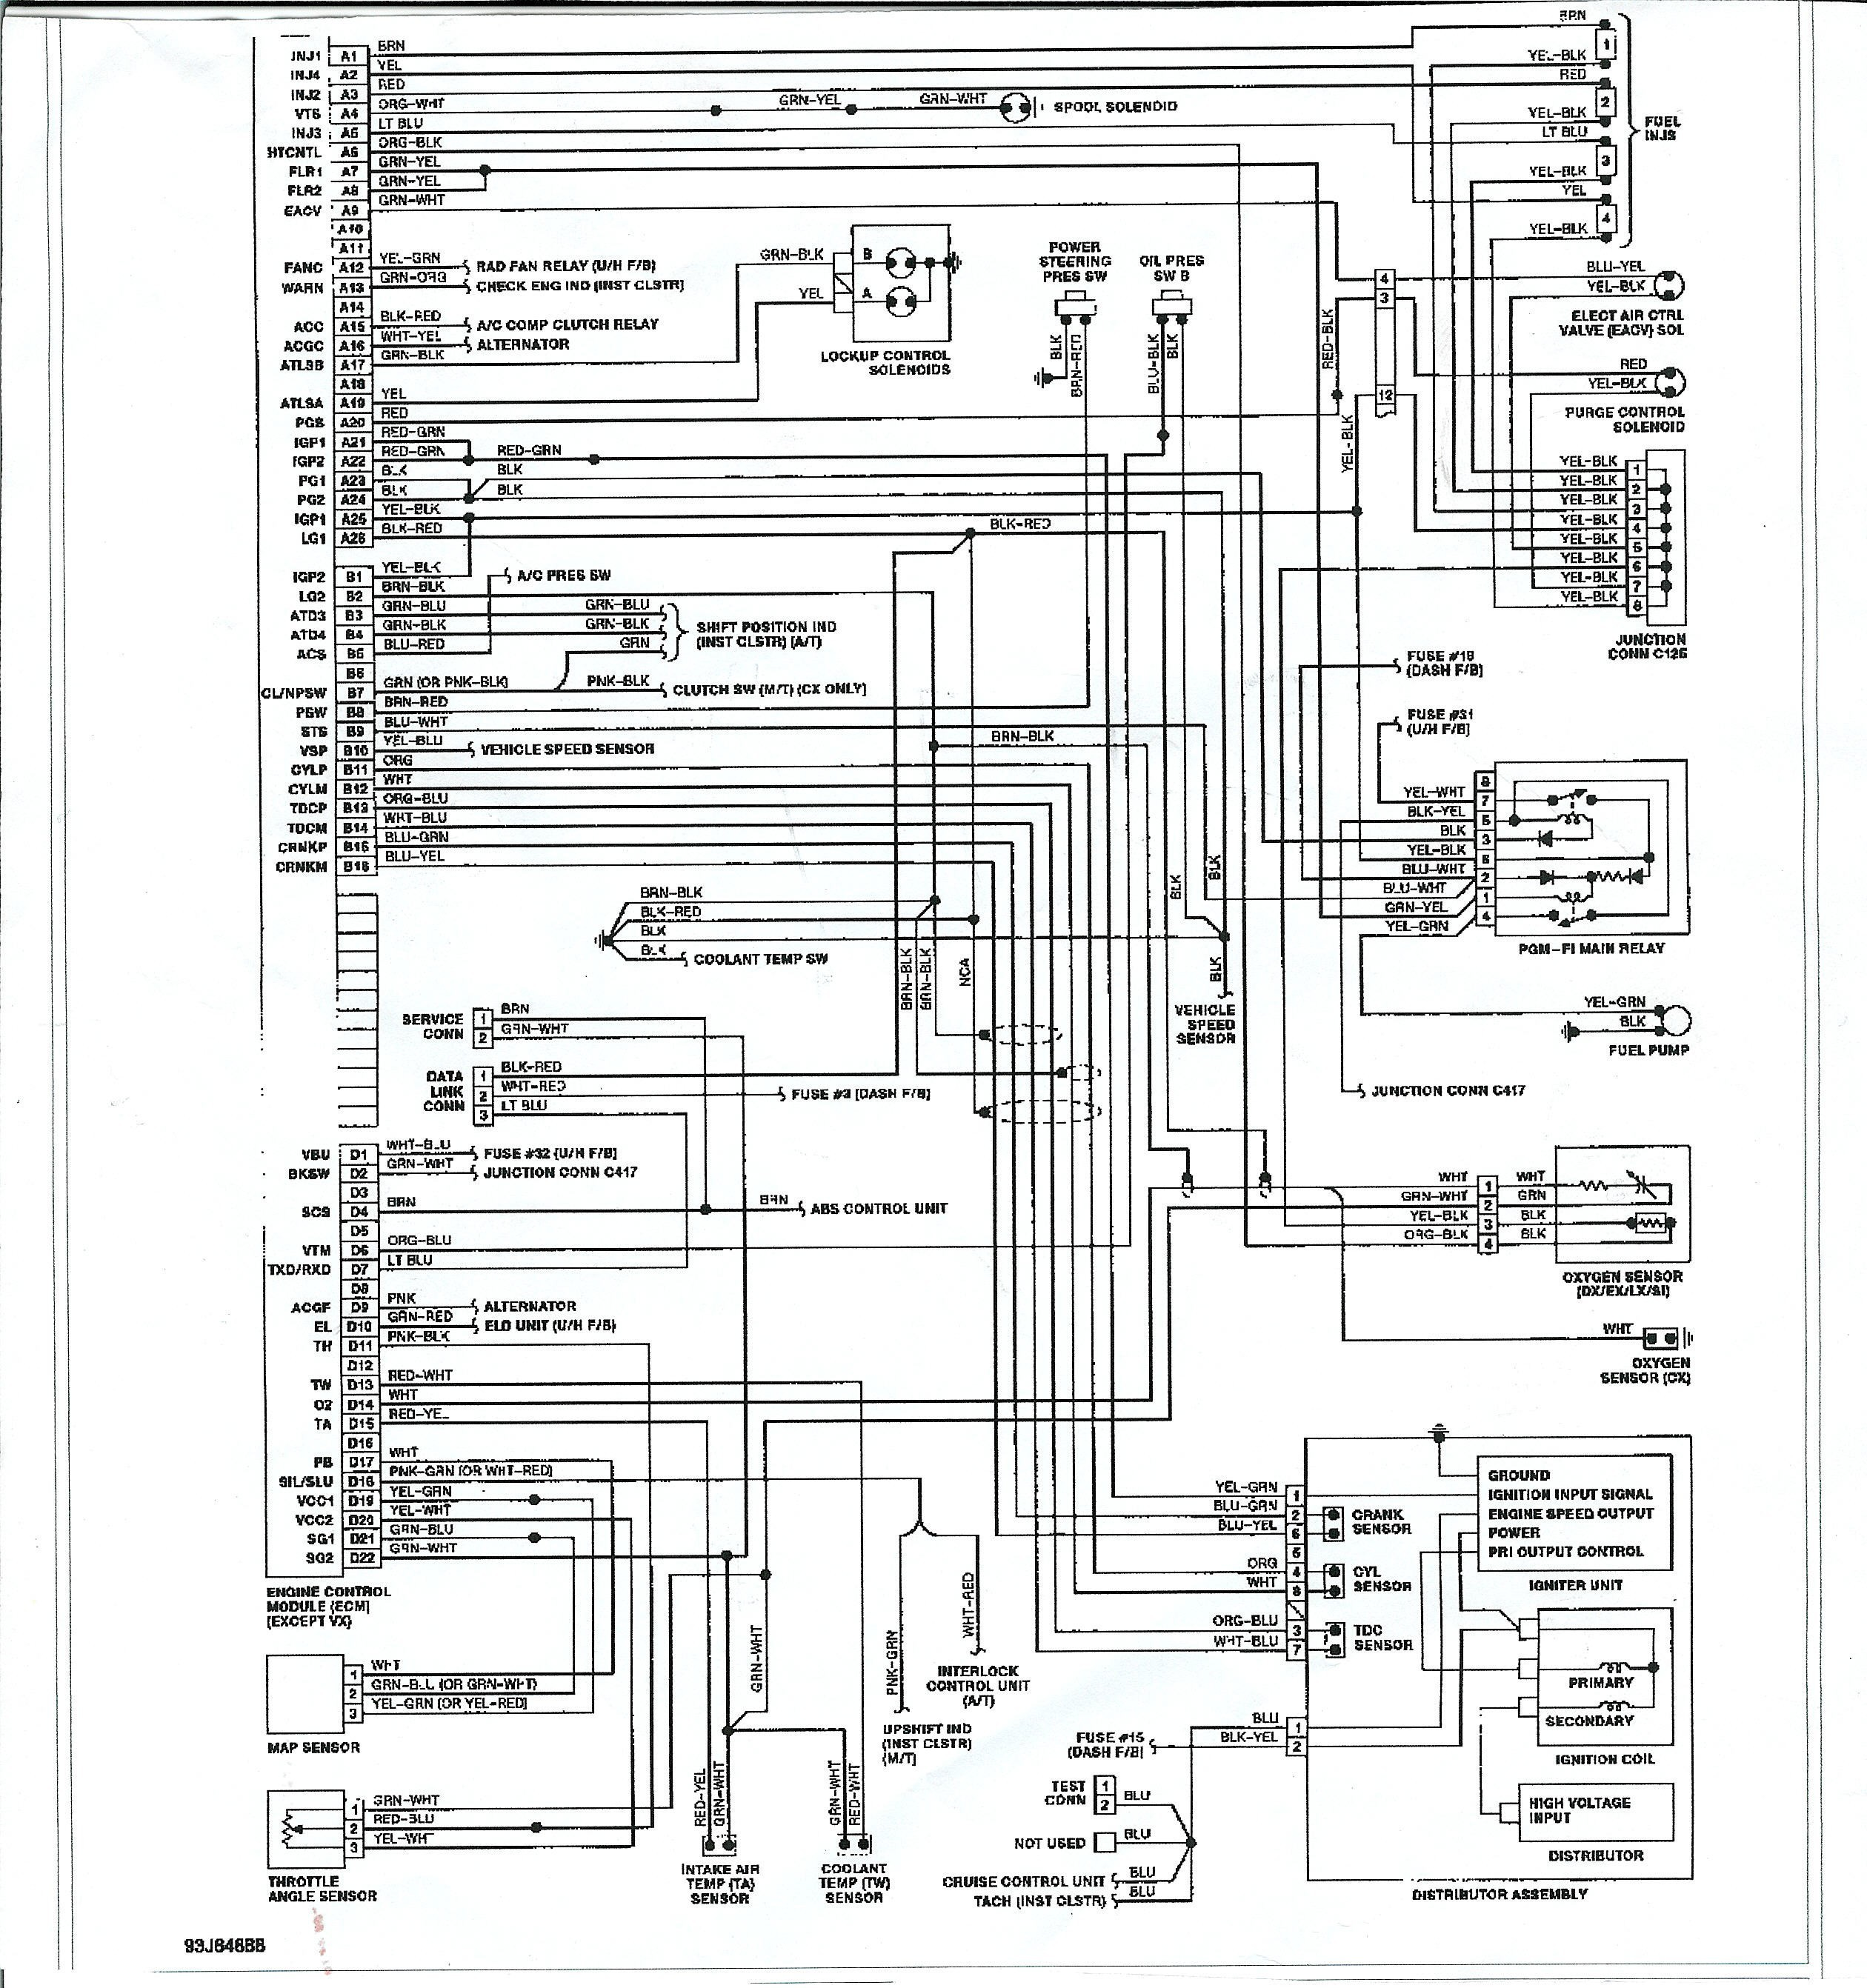 1996 Honda Accord 2 Door Ex Wiring Diagram - Unlimited ... on chevy s-10 ignition wiring, dodge ignition wiring, chrysler ignition wiring,